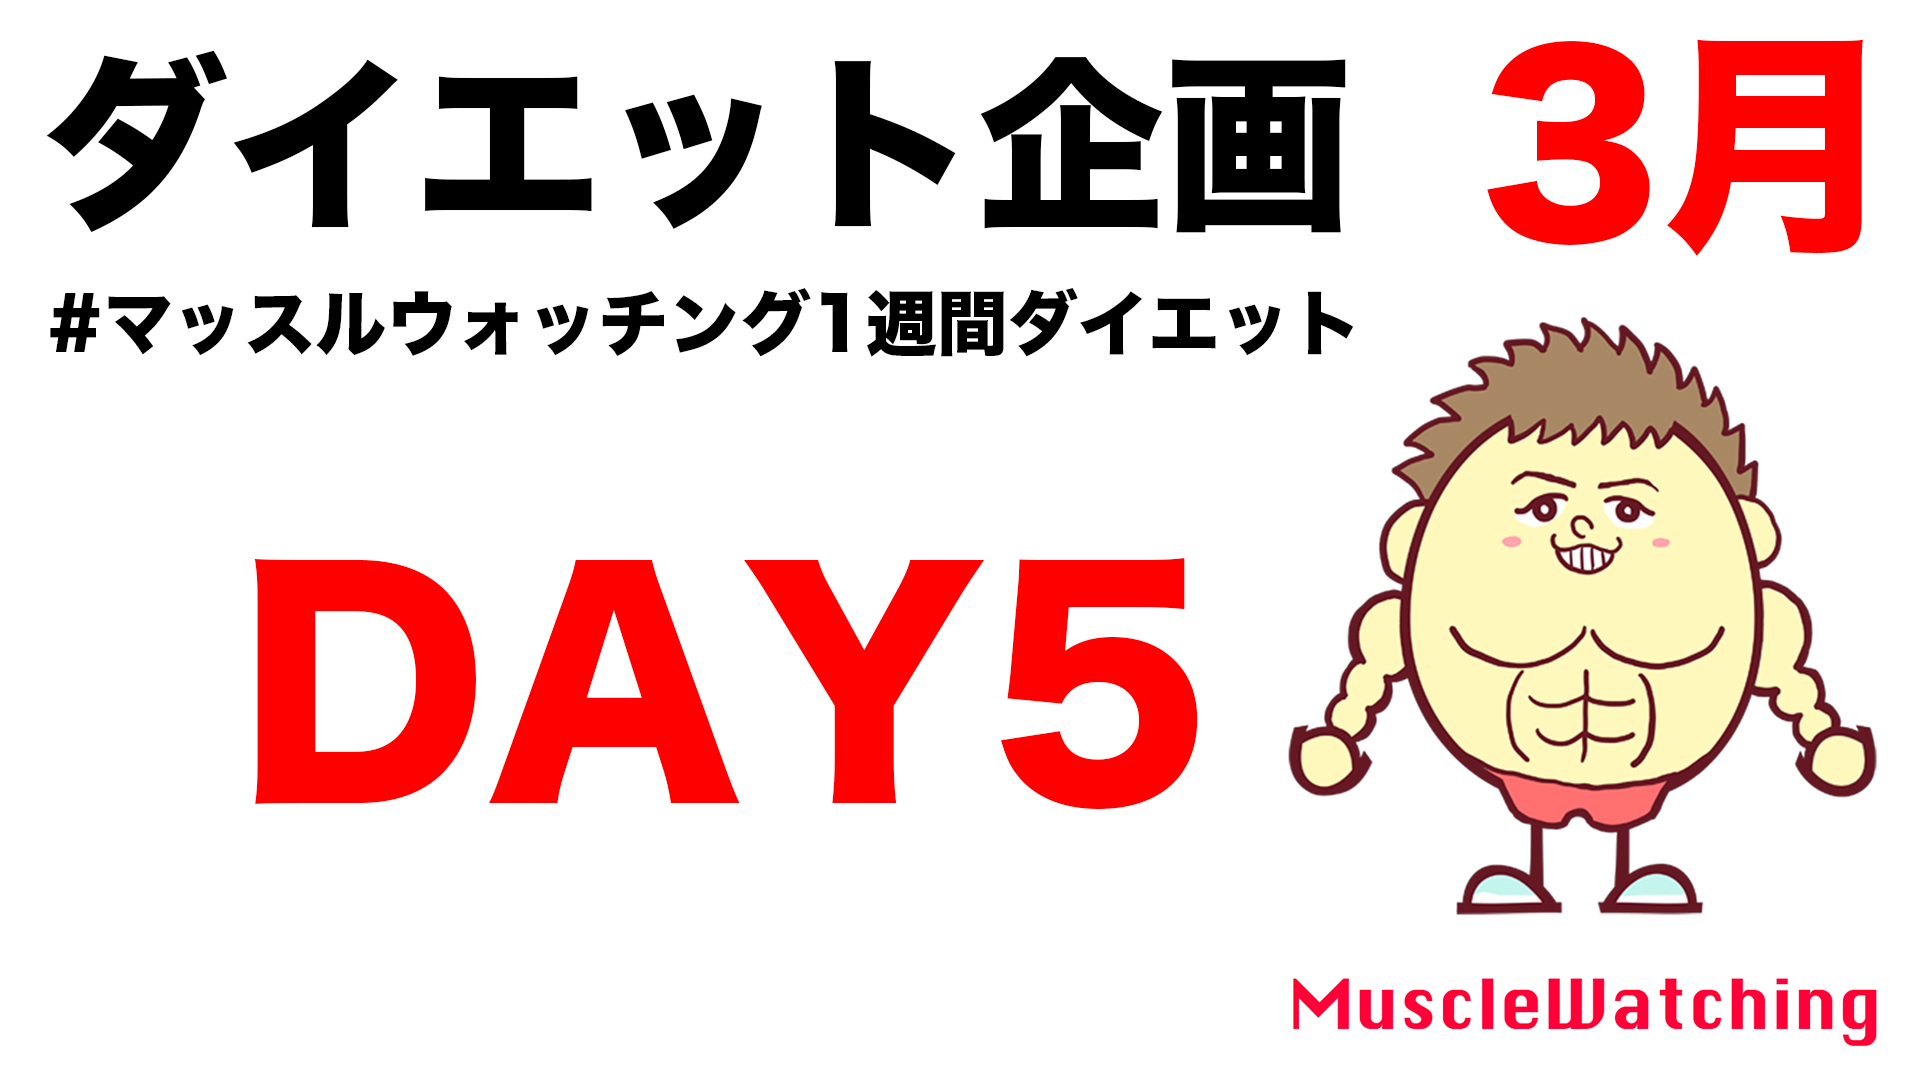 【DAY5】女性限定1週間ダイエット企画 3月  Muscle Watching